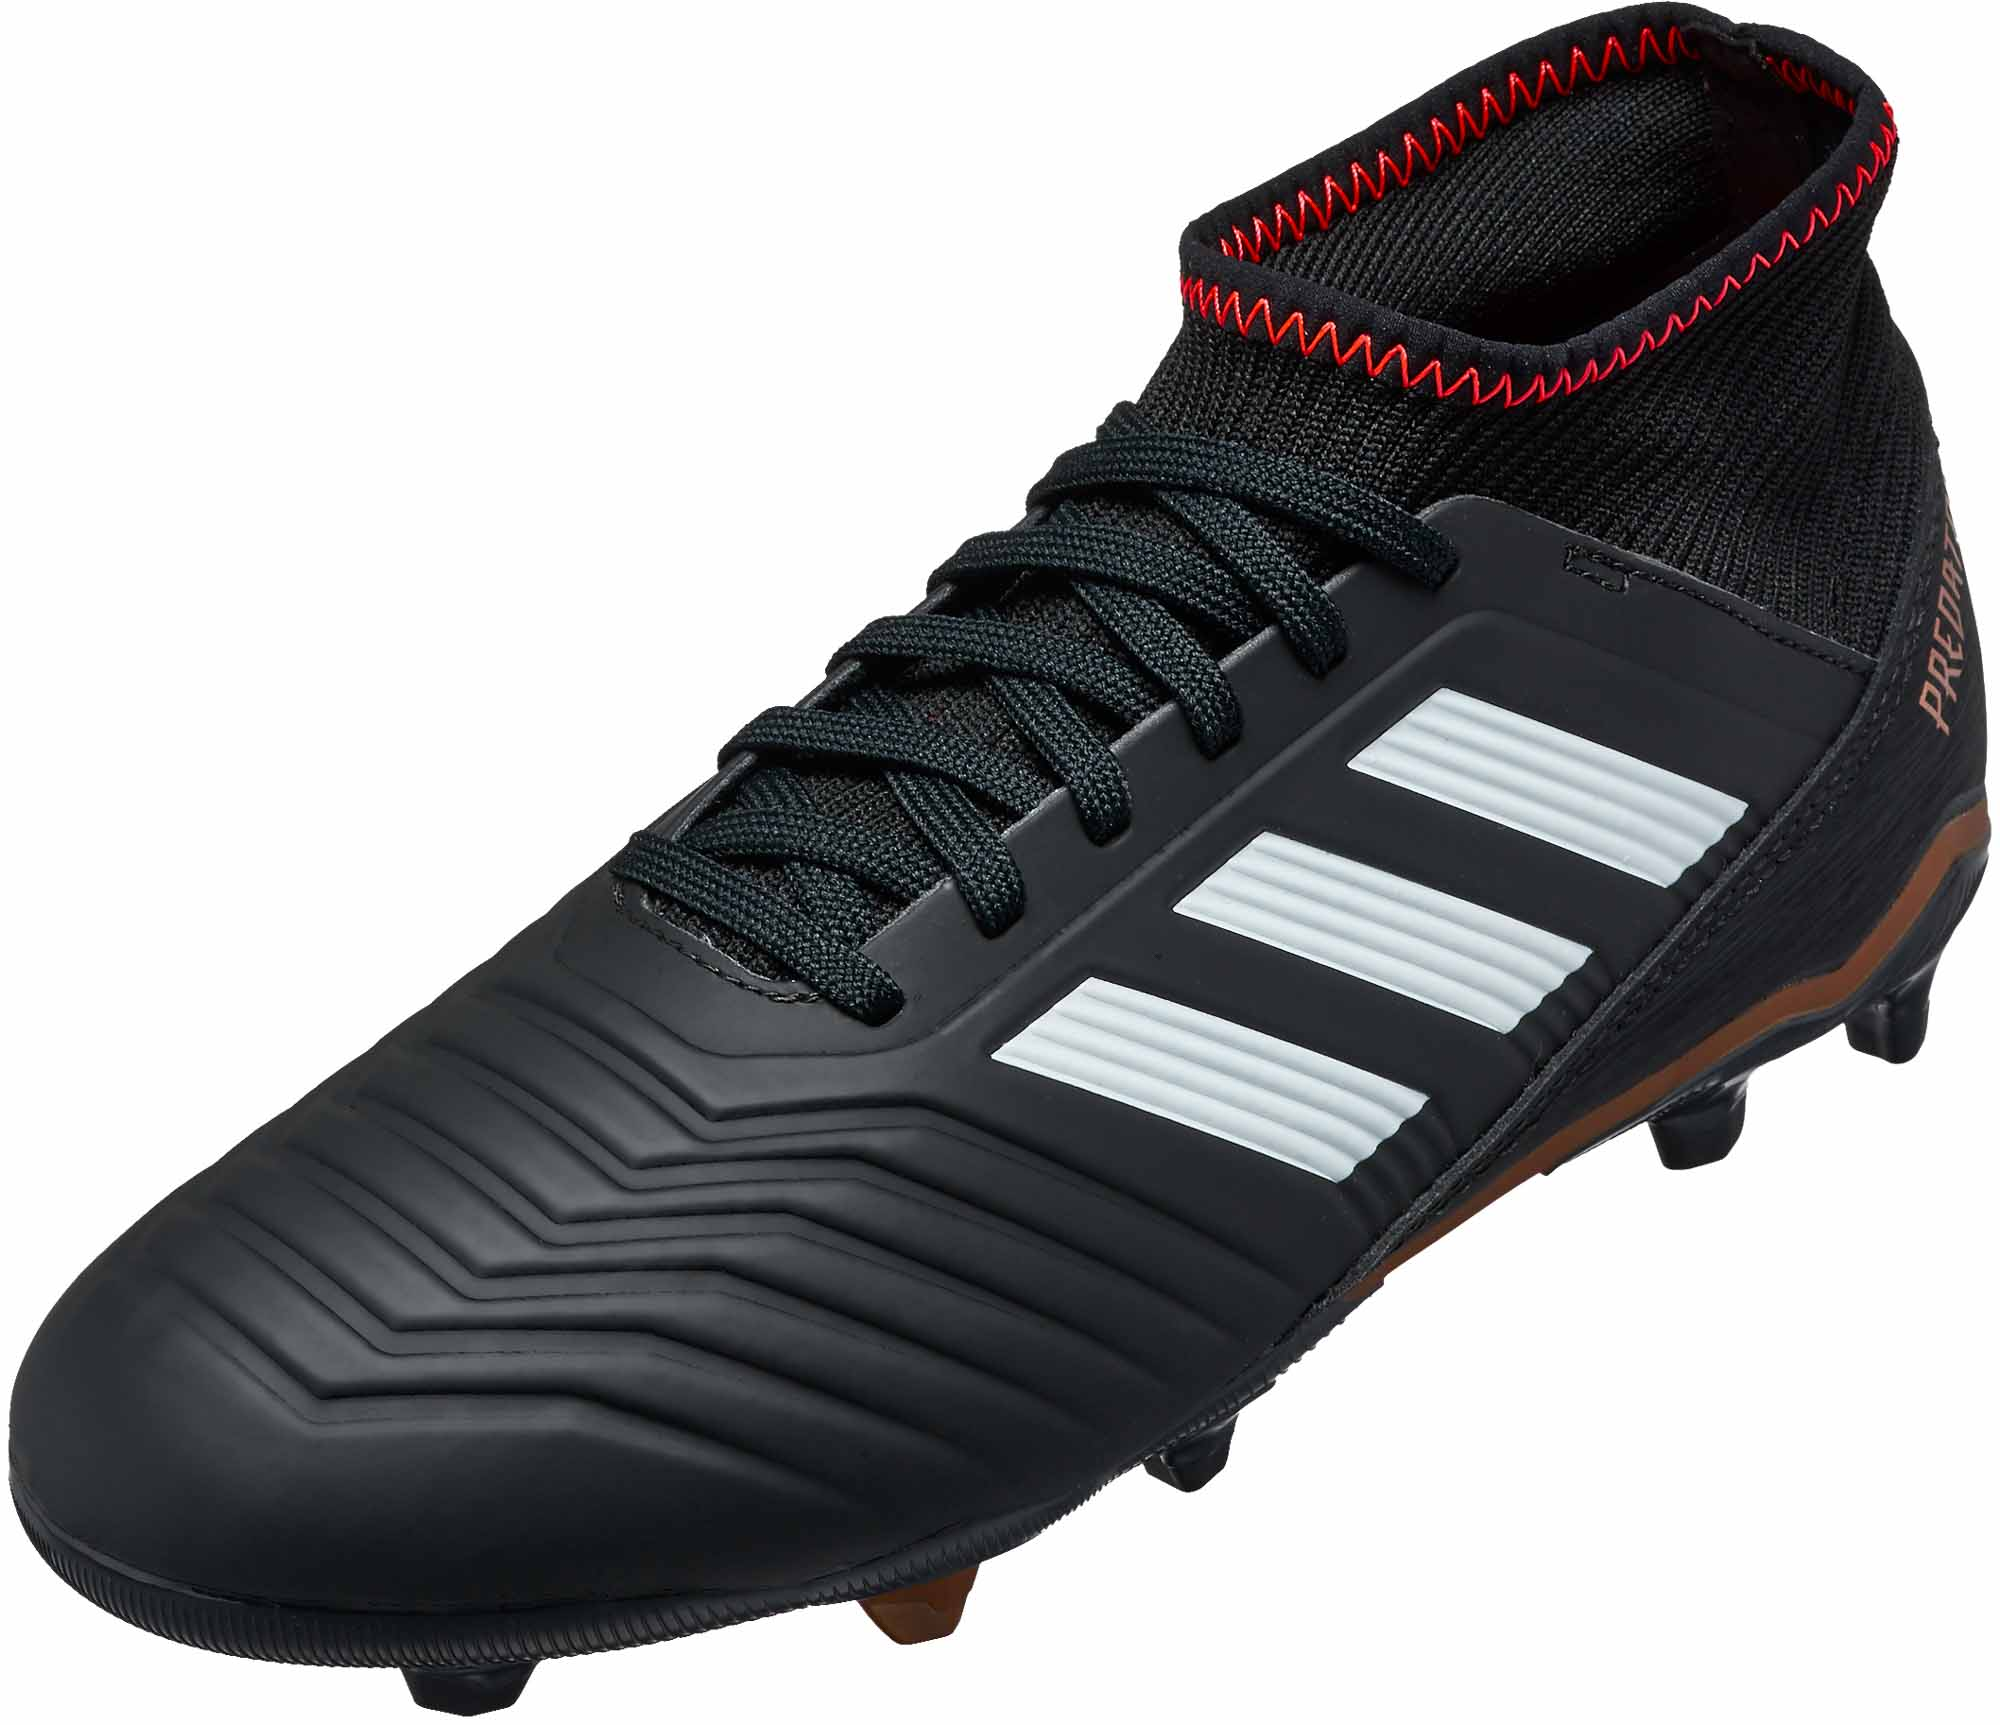 66c9ff209753 Kids adidas Predator 18.3 - Youth Black Soccer Cleats